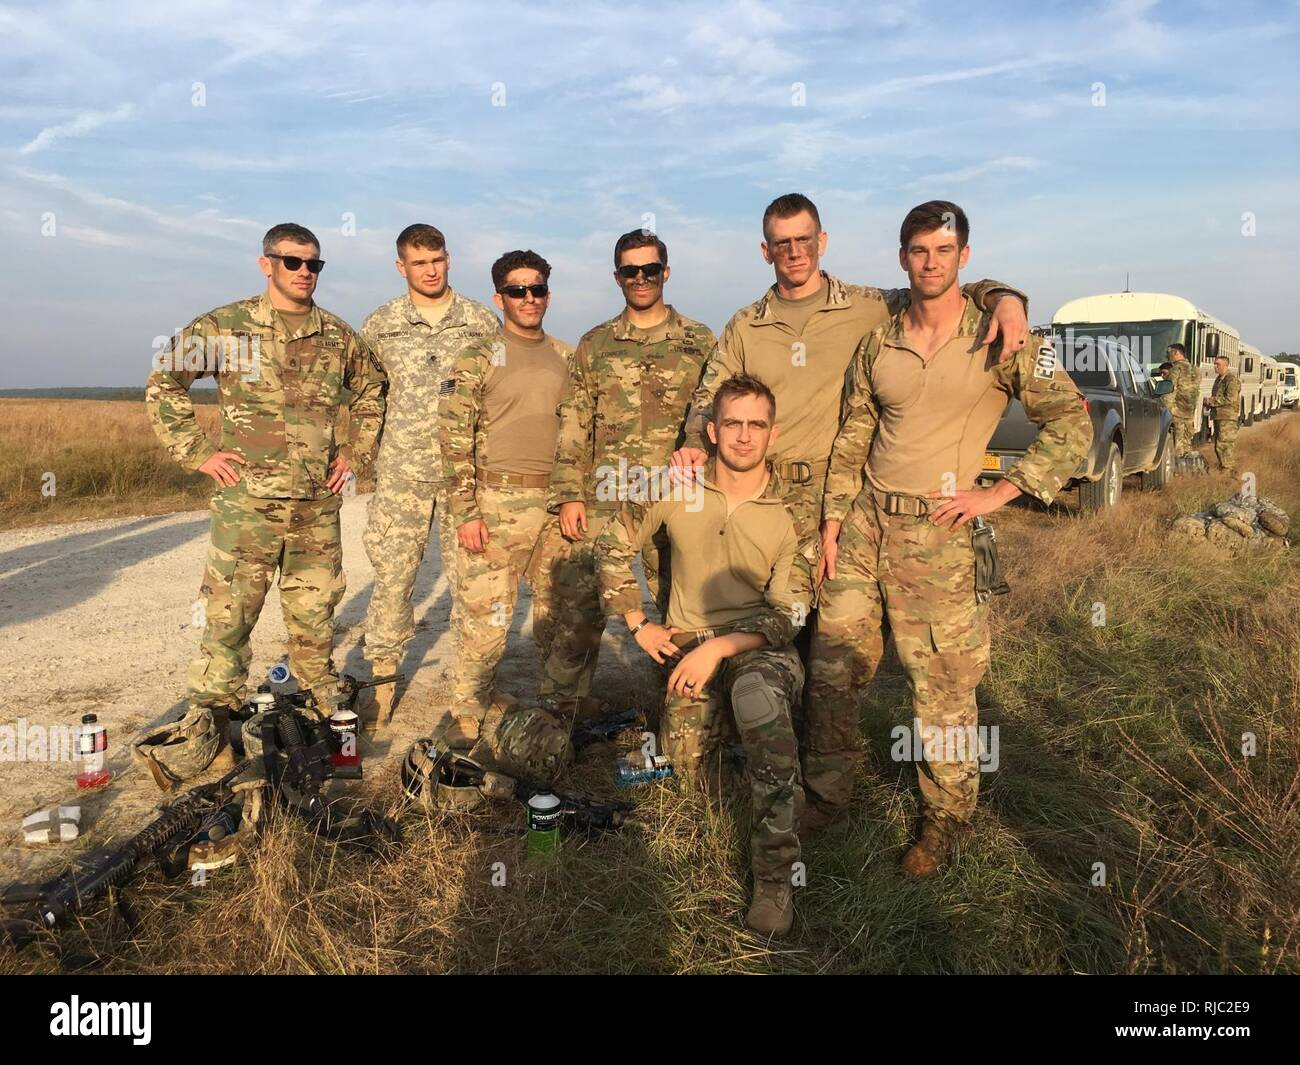 Soldiers from the 767th Ordnance Company (EOD) on Sicily Drop Zone on Nov 3 following the first jump by a conventional explosive ordnance disposal unit with a unit from the 82nd Airborne Division. This is the first collective EOD Airborne operation for the newly designated airborne capable global response force EOD support company. - Stock Image